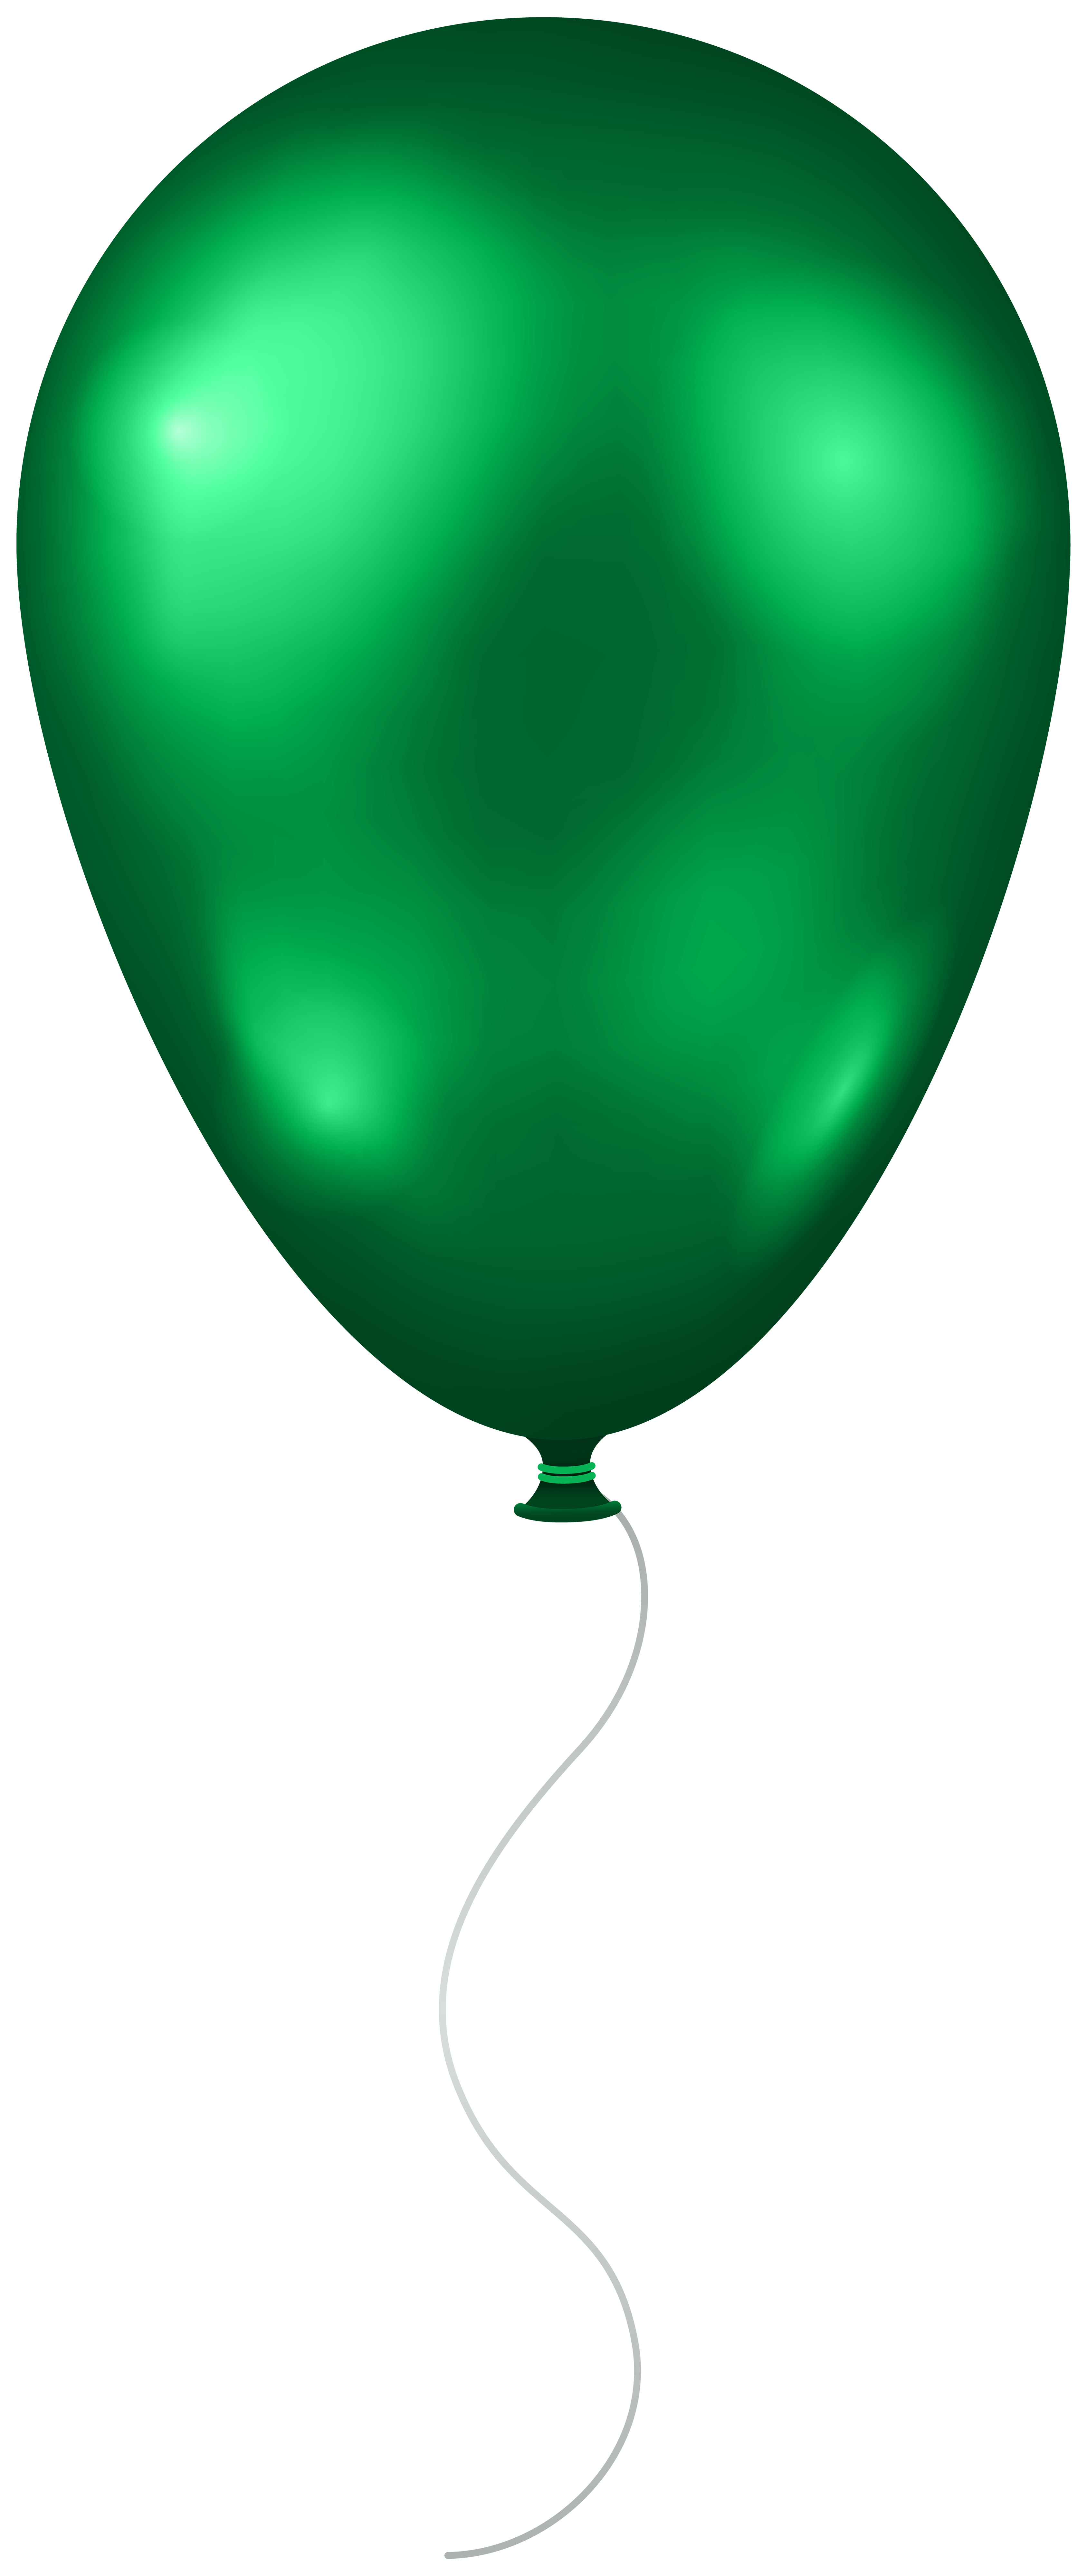 image library stock Transparent png clip art. Green balloon clipart